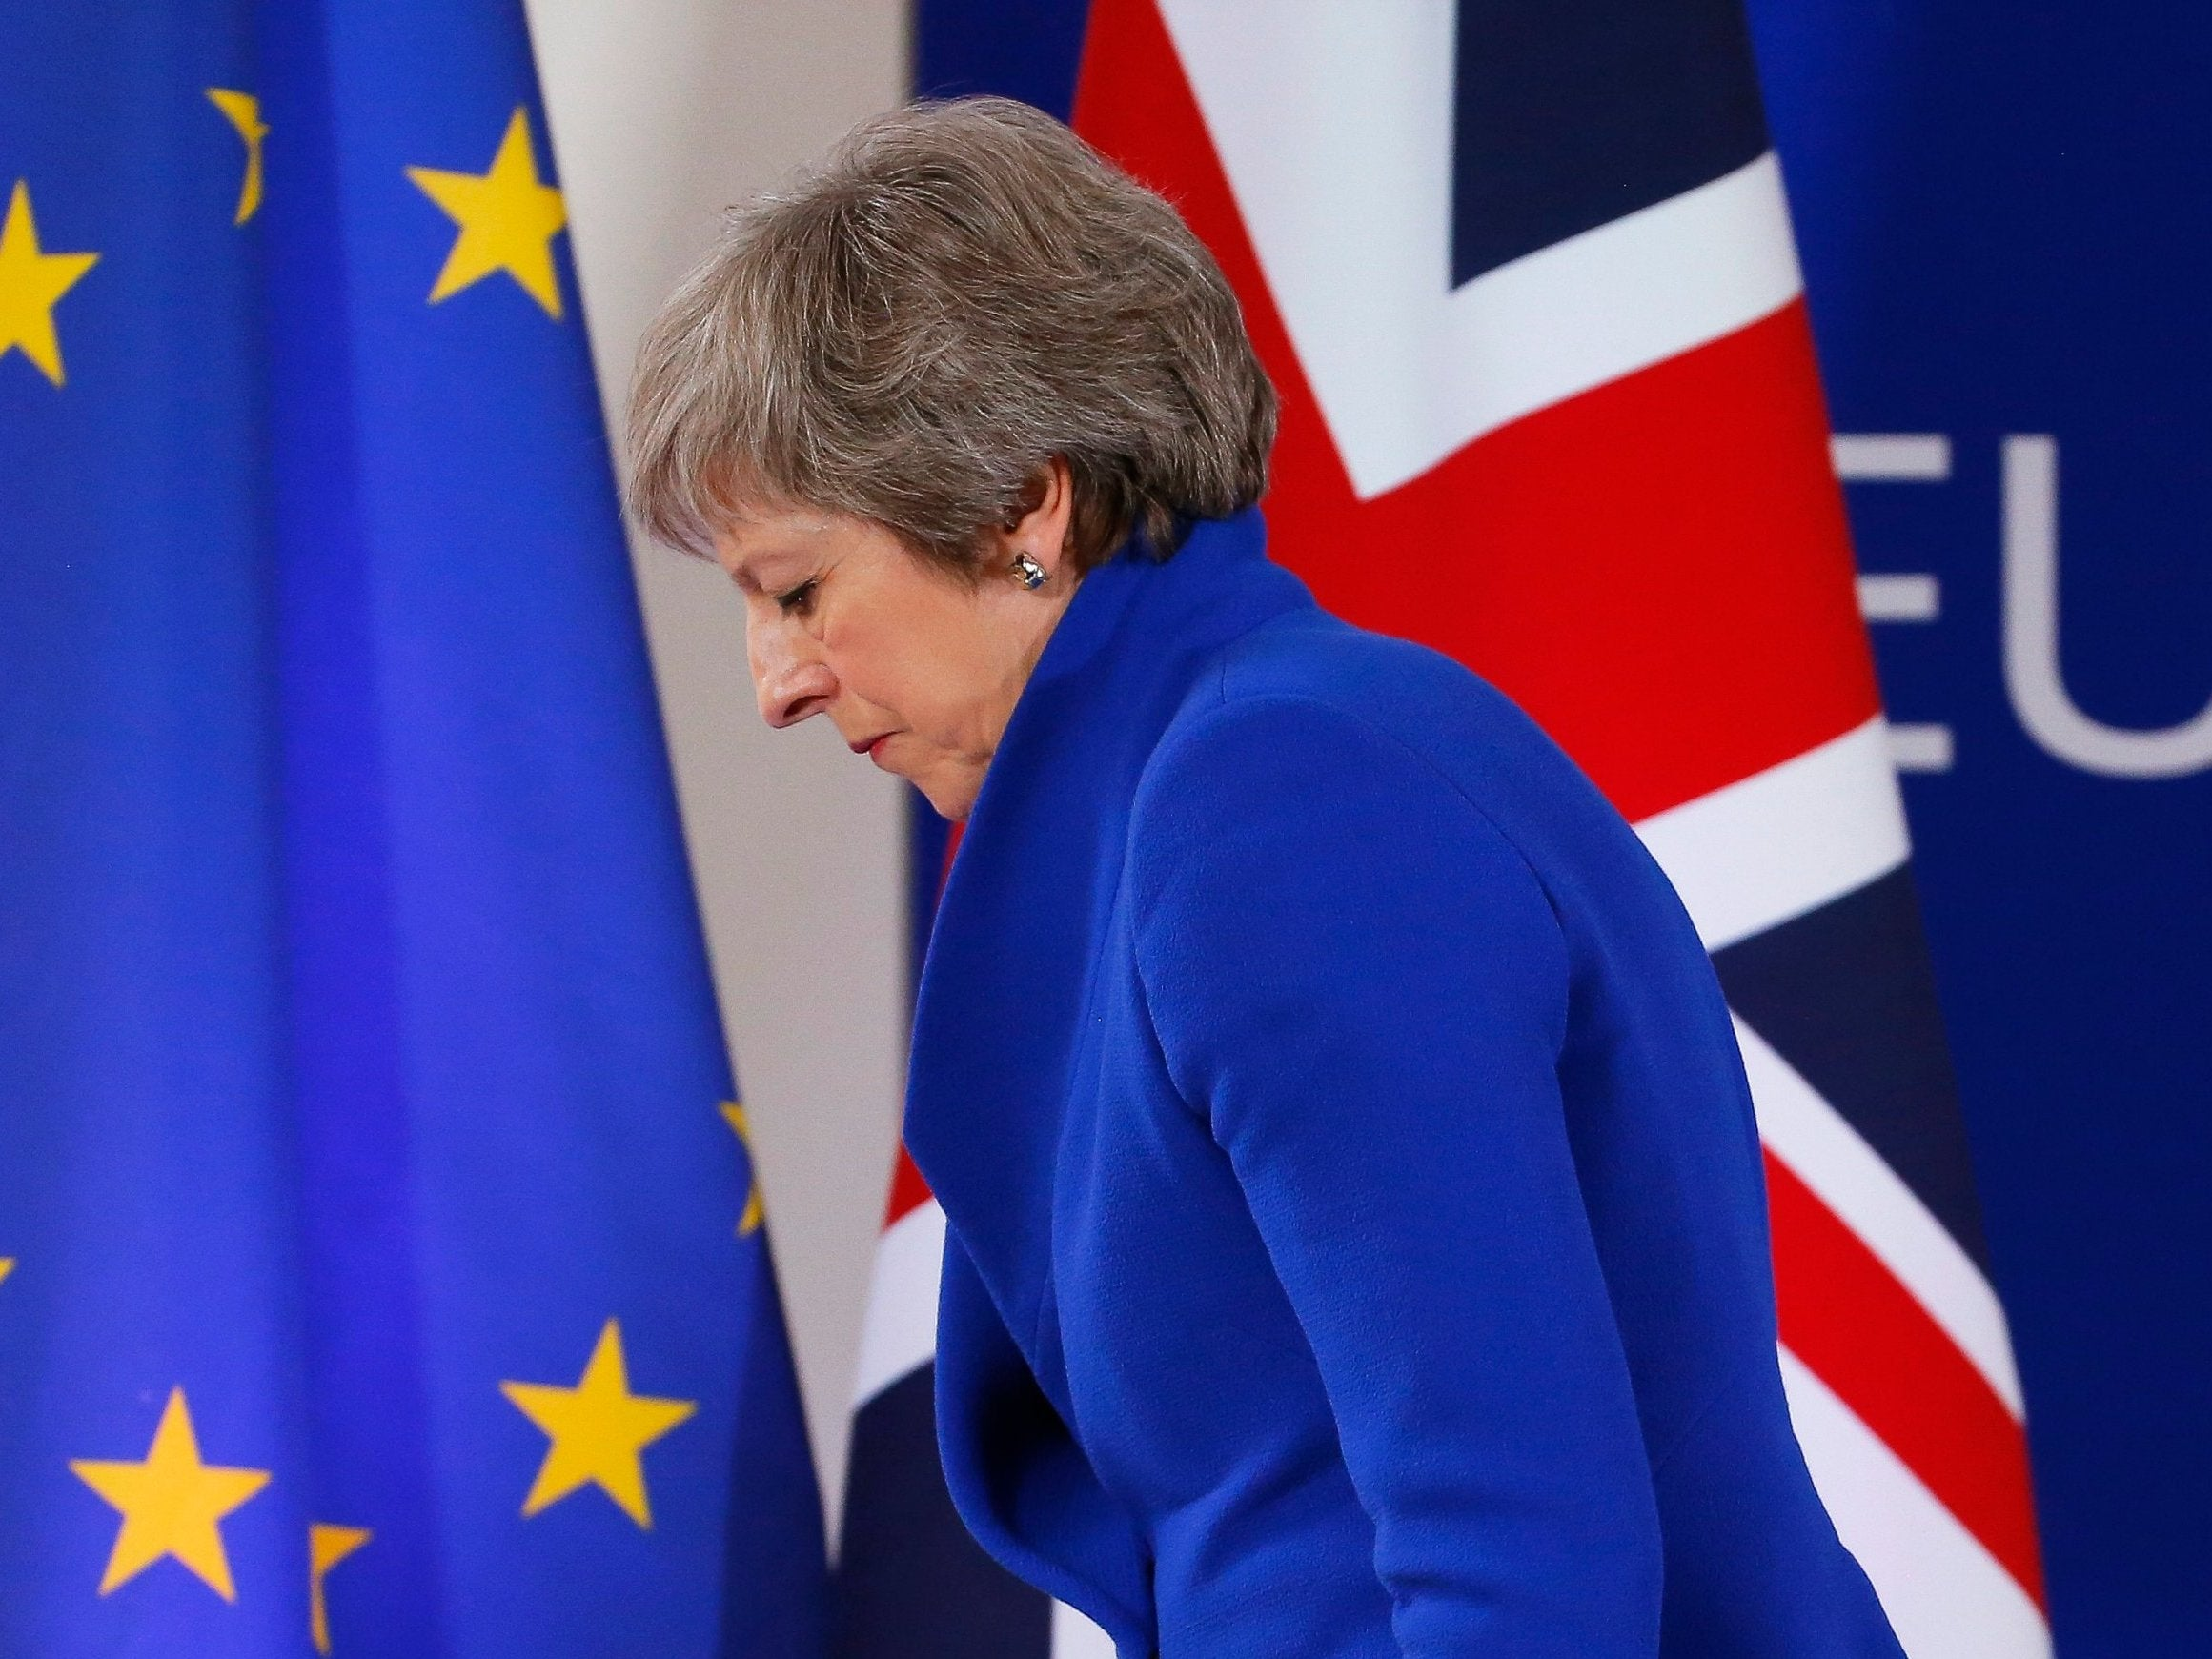 If Theresa May's Brexit deal is voted down, events will begin to unfold quickly